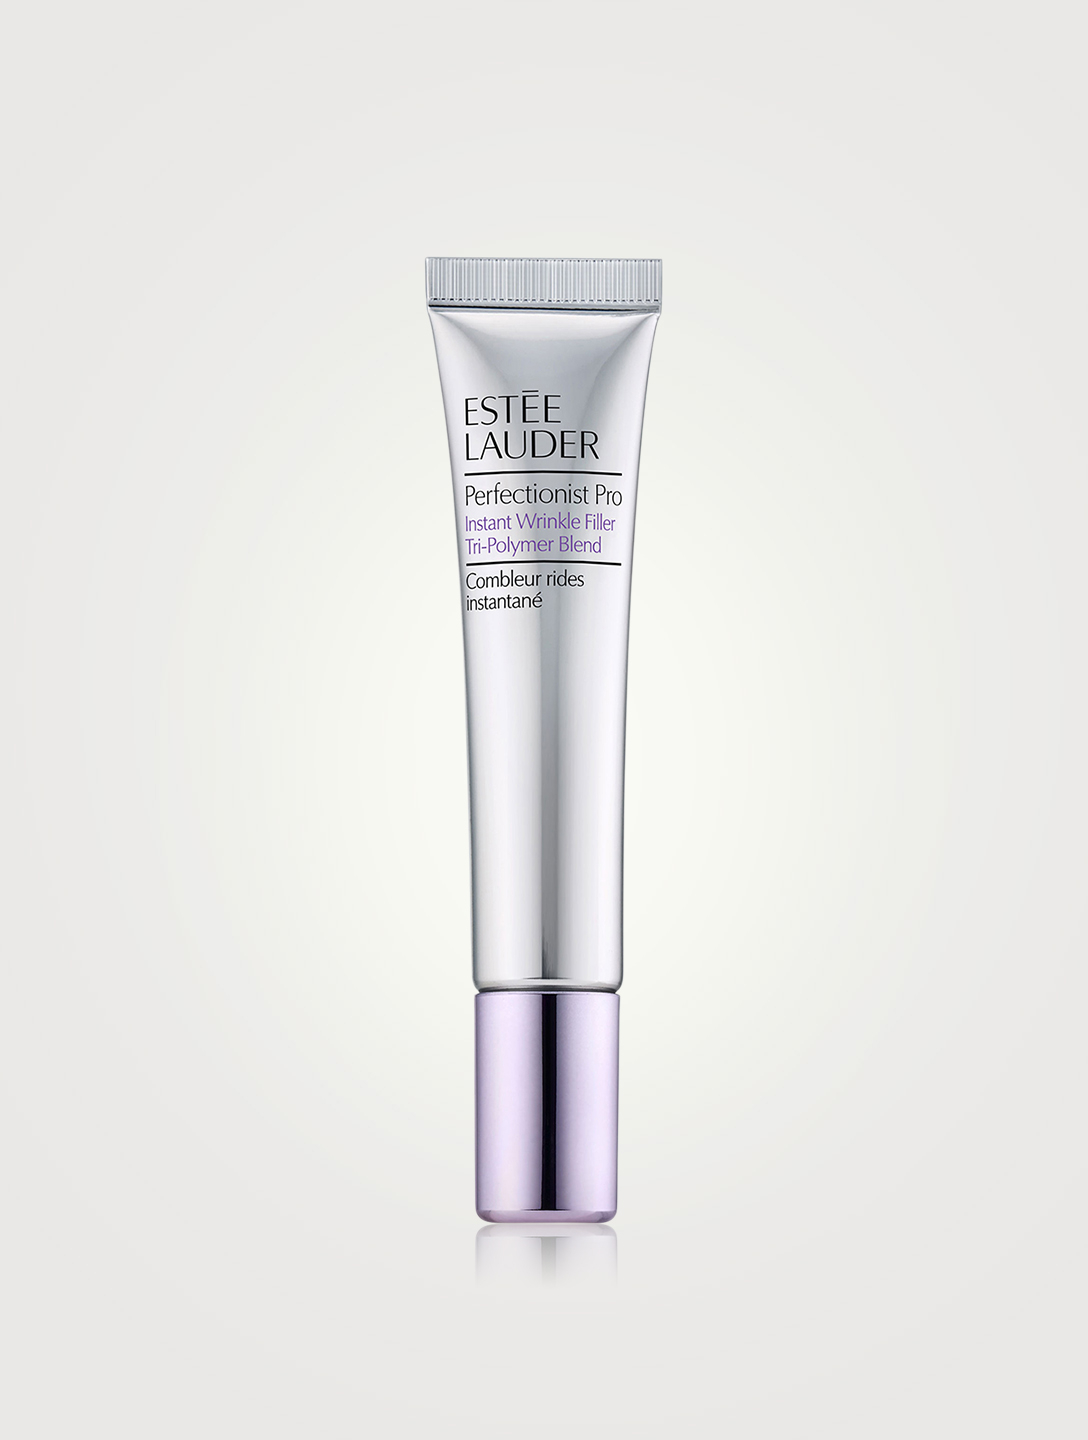 ESTÉE LAUDER Perfectionist Pro Instant Wrinkle Filler TriPolymer Blend Beauty